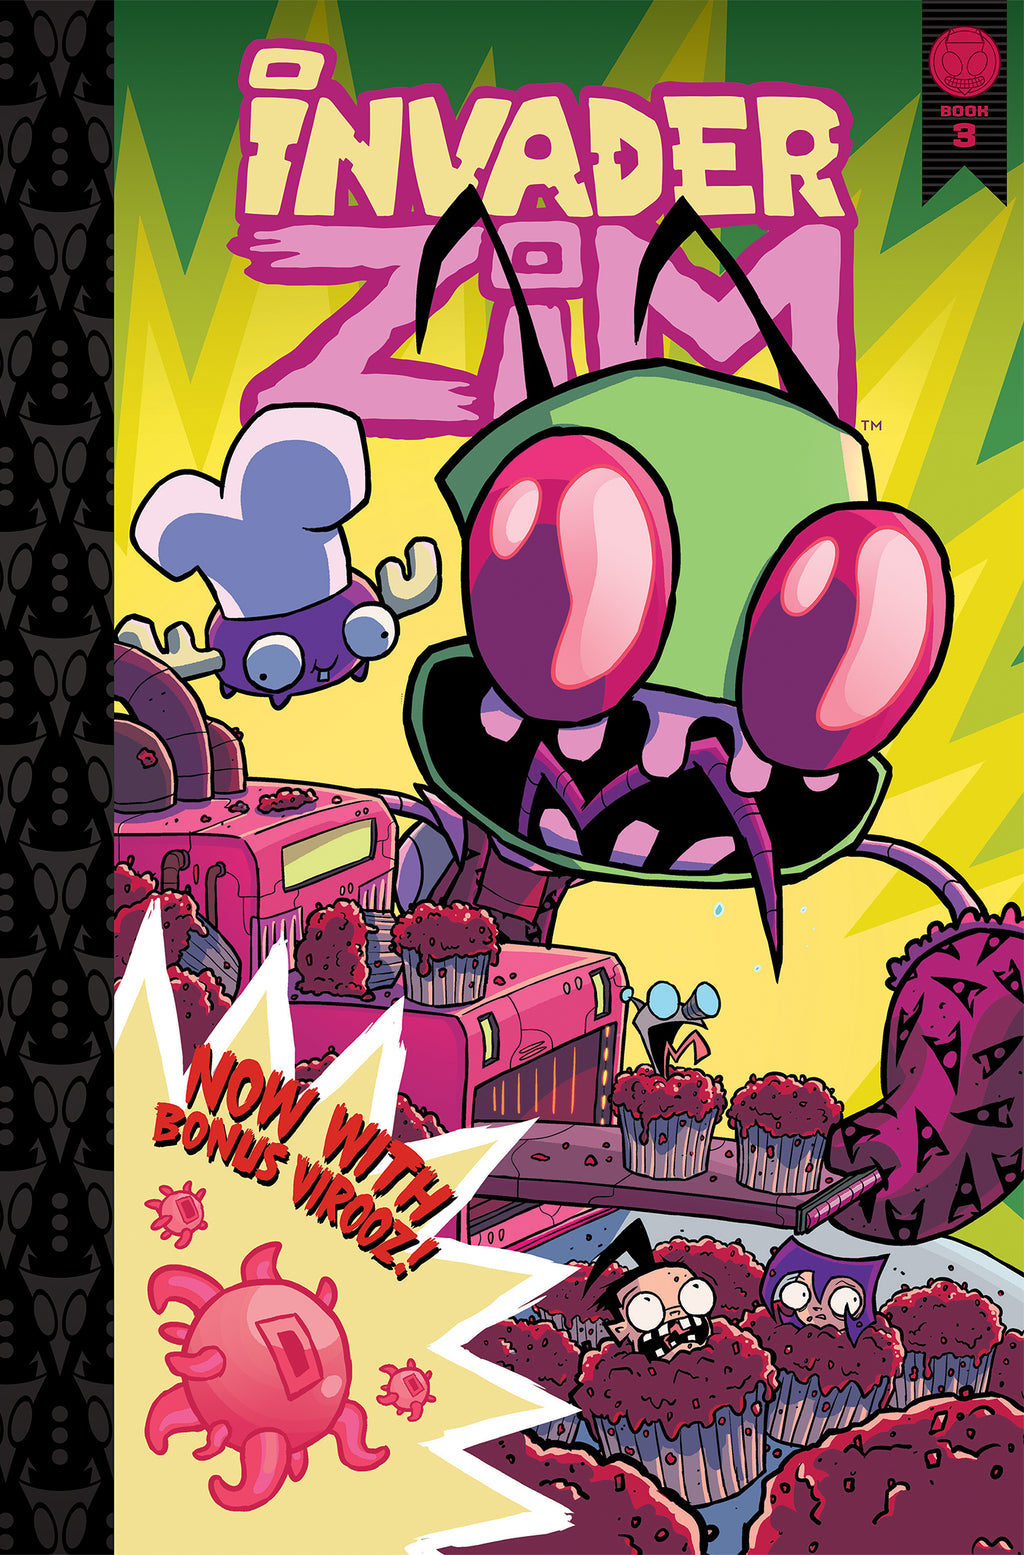 Invader Zim Hardcover Book 3